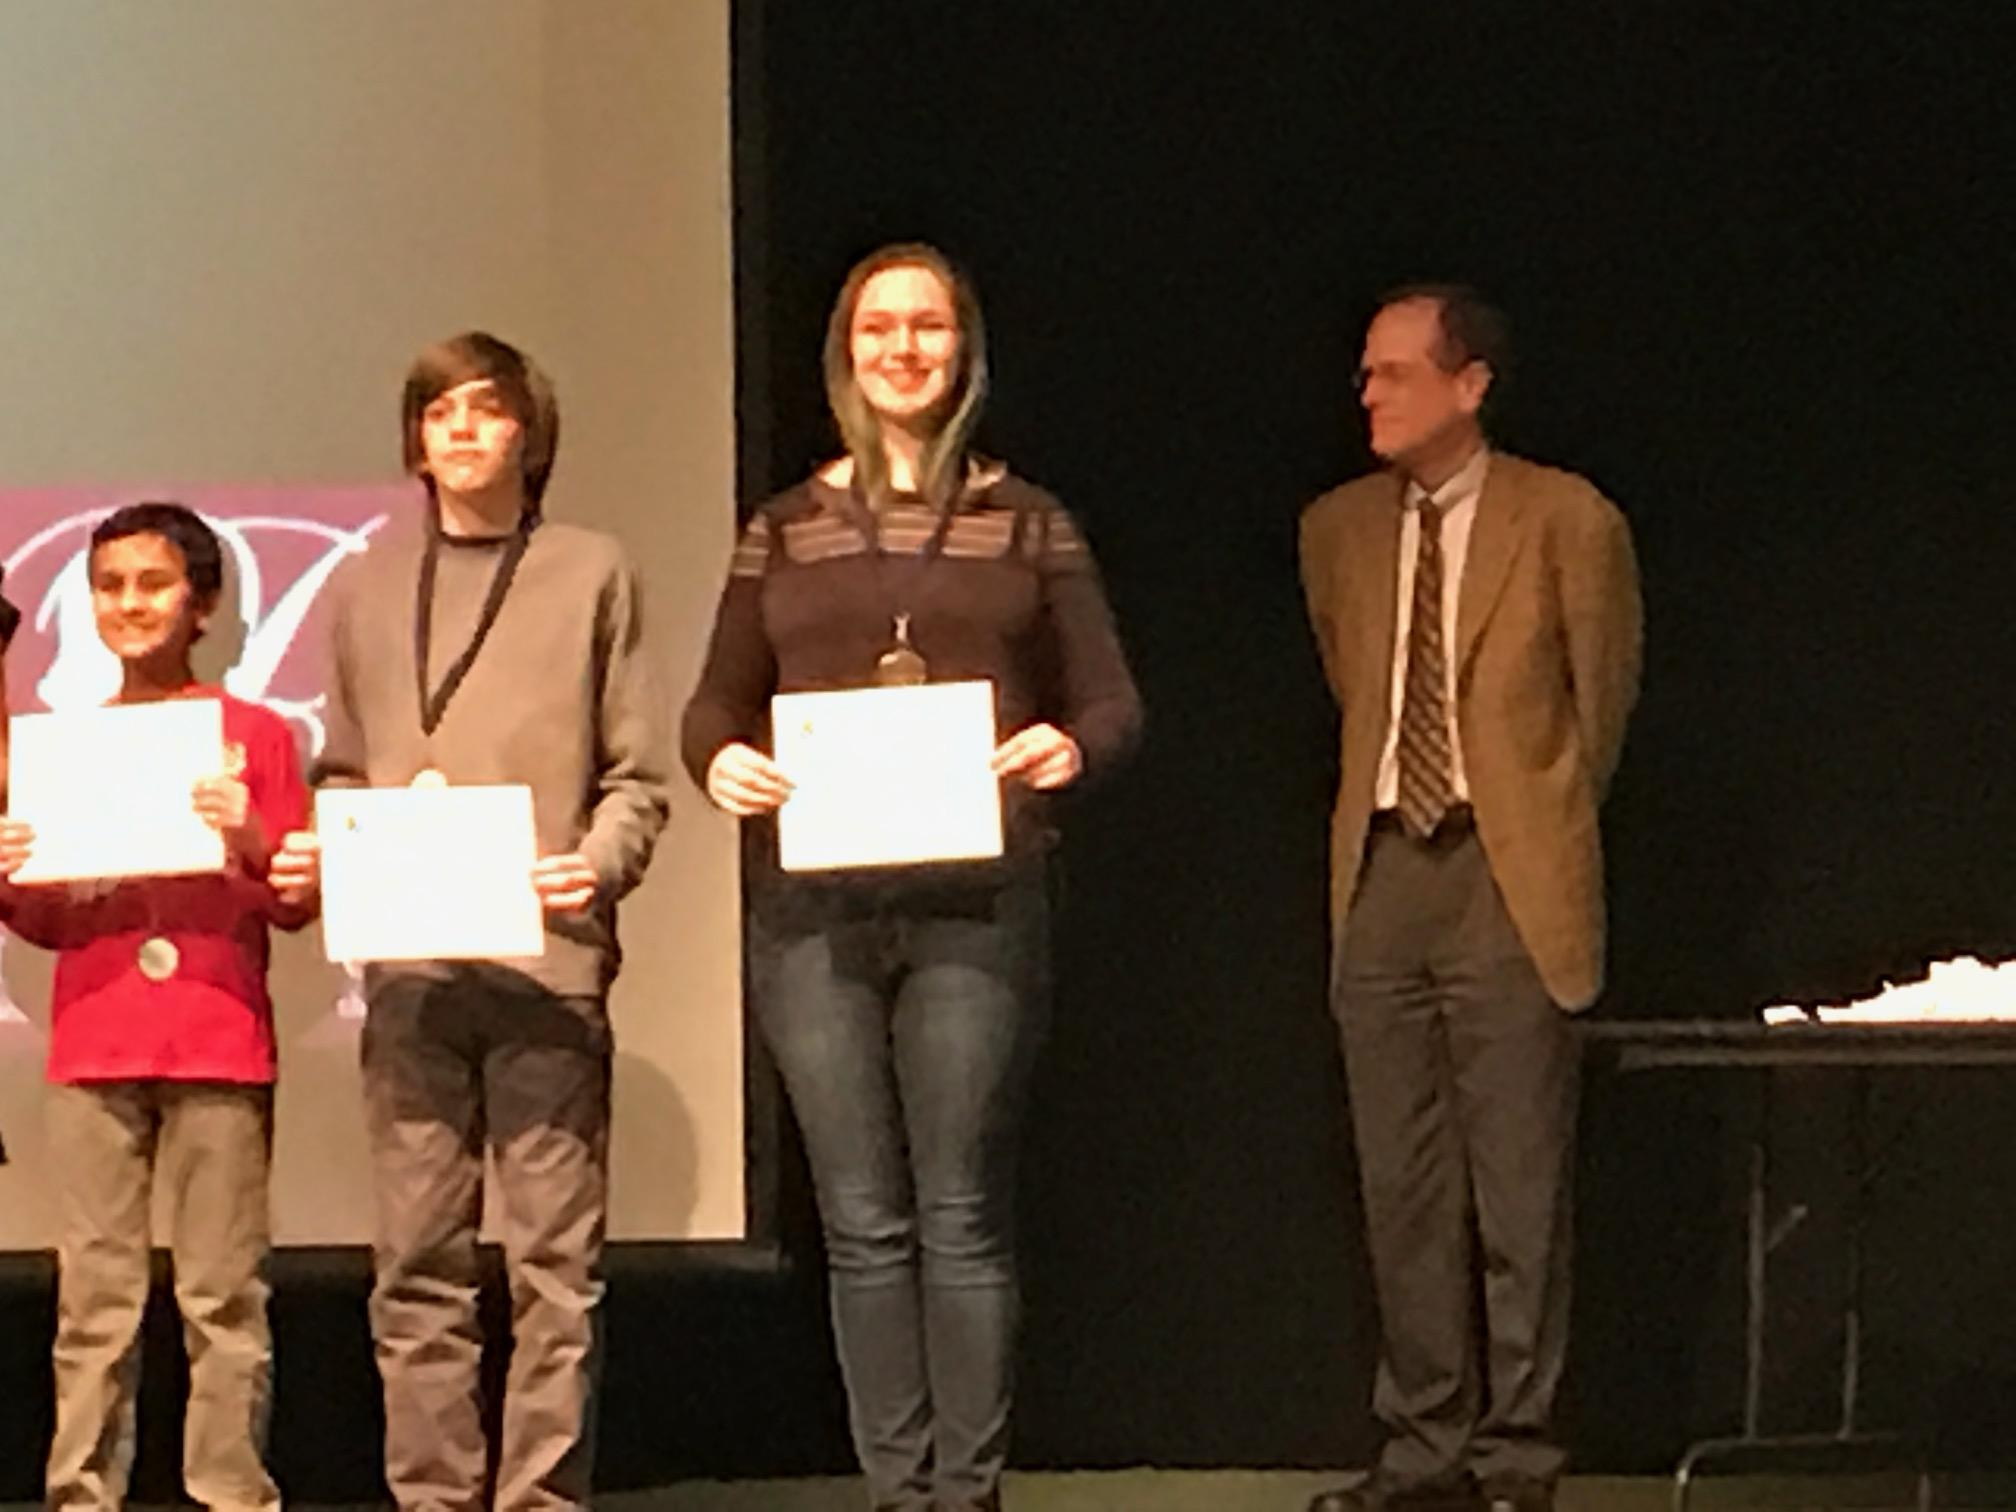 Senior Cassie Block wins Outstanding Interpretation in the Film category for the county-wide Reflections Contest.